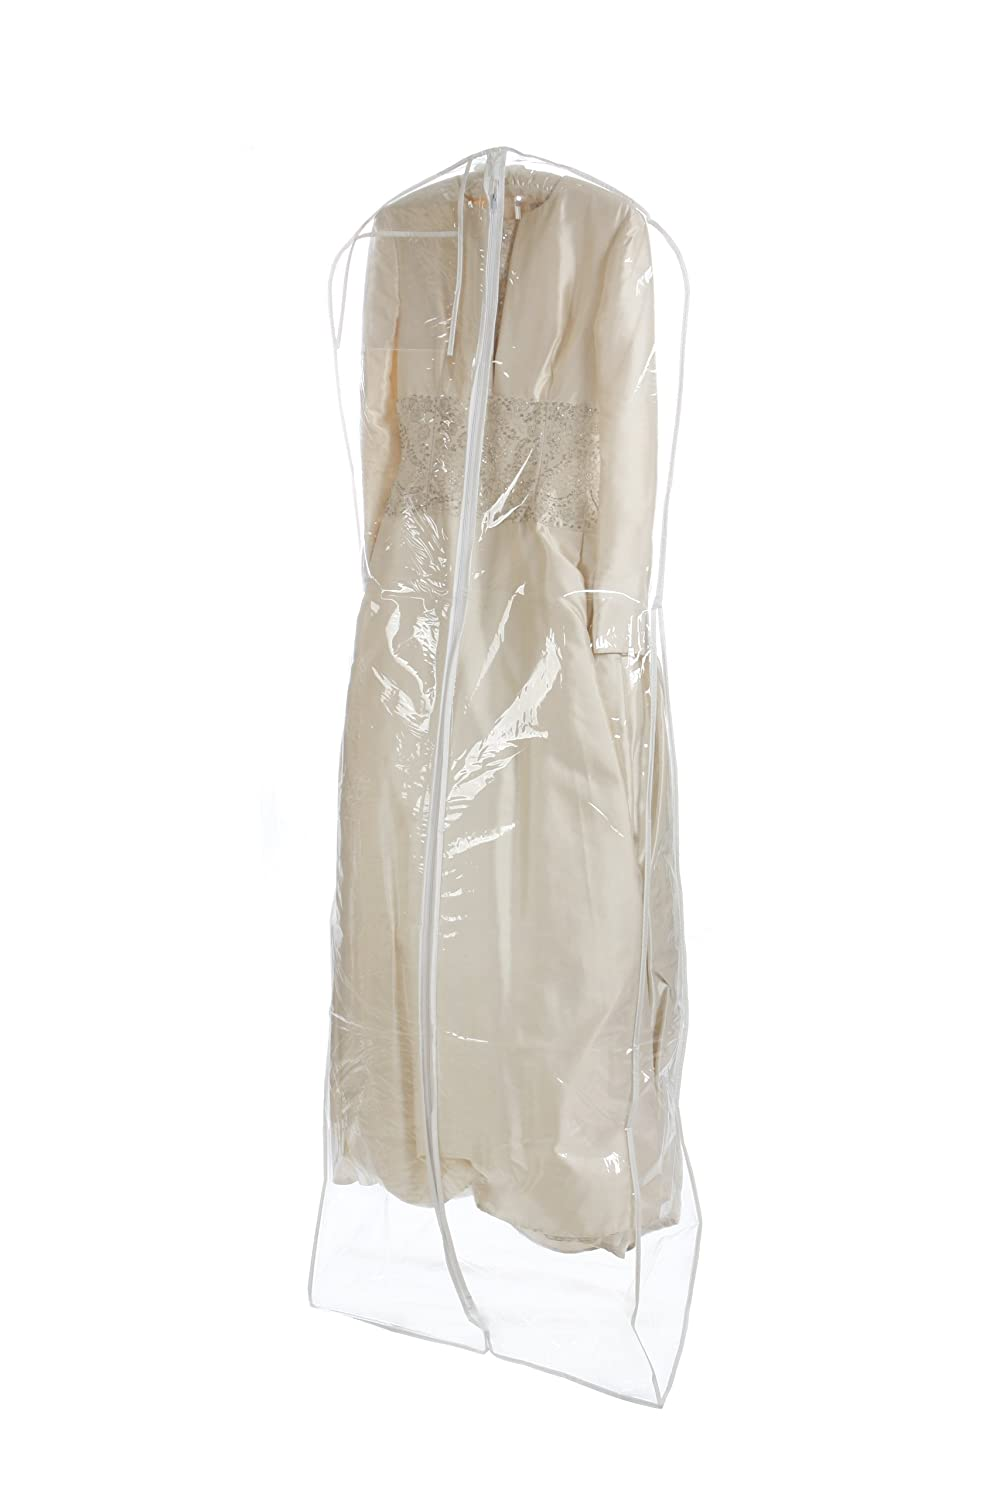 heavy duty wedding dress garment bag wedding gown bag